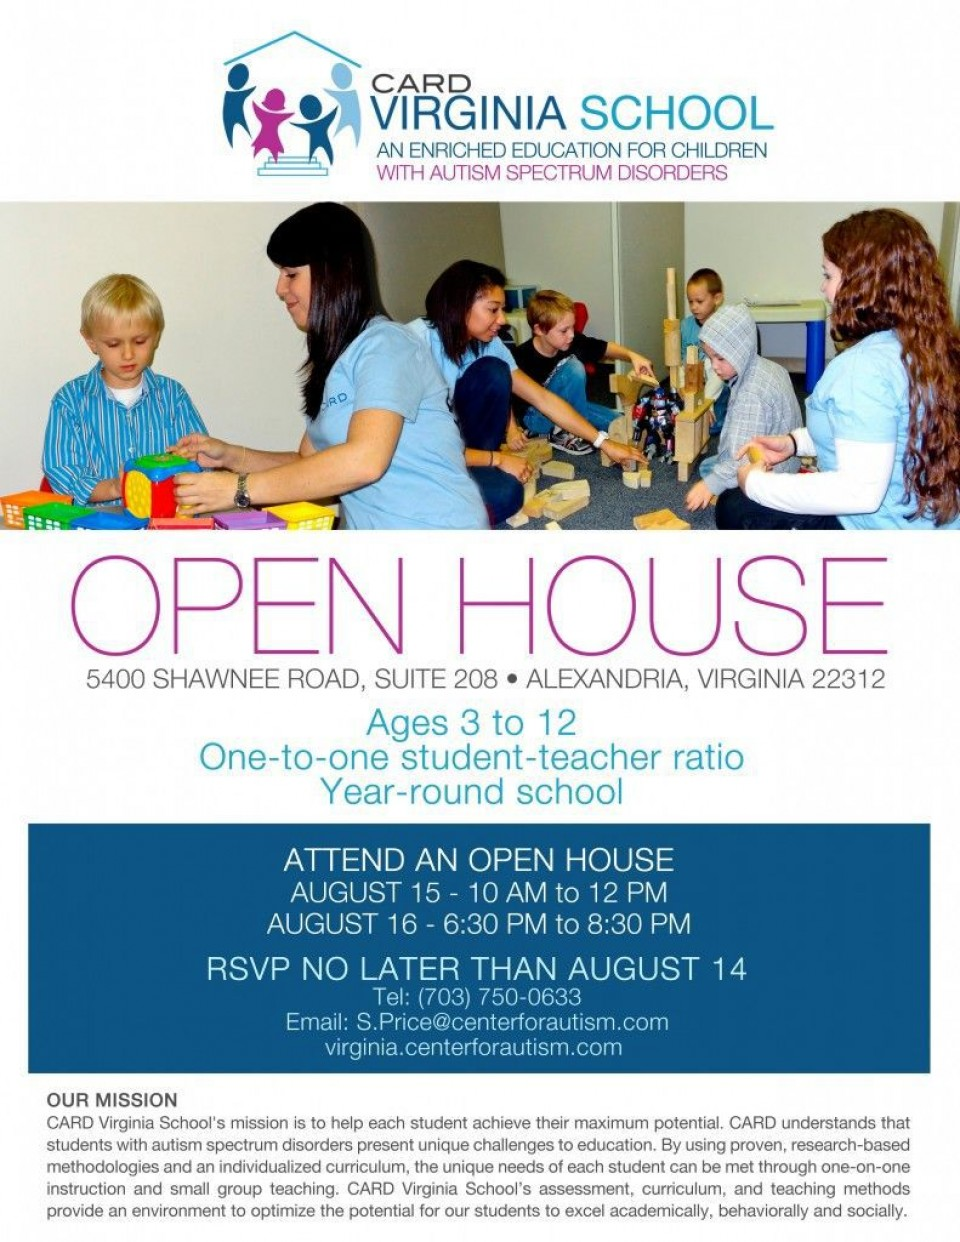 003 Surprising School Open House Flyer Template Image  Free Microsoft960